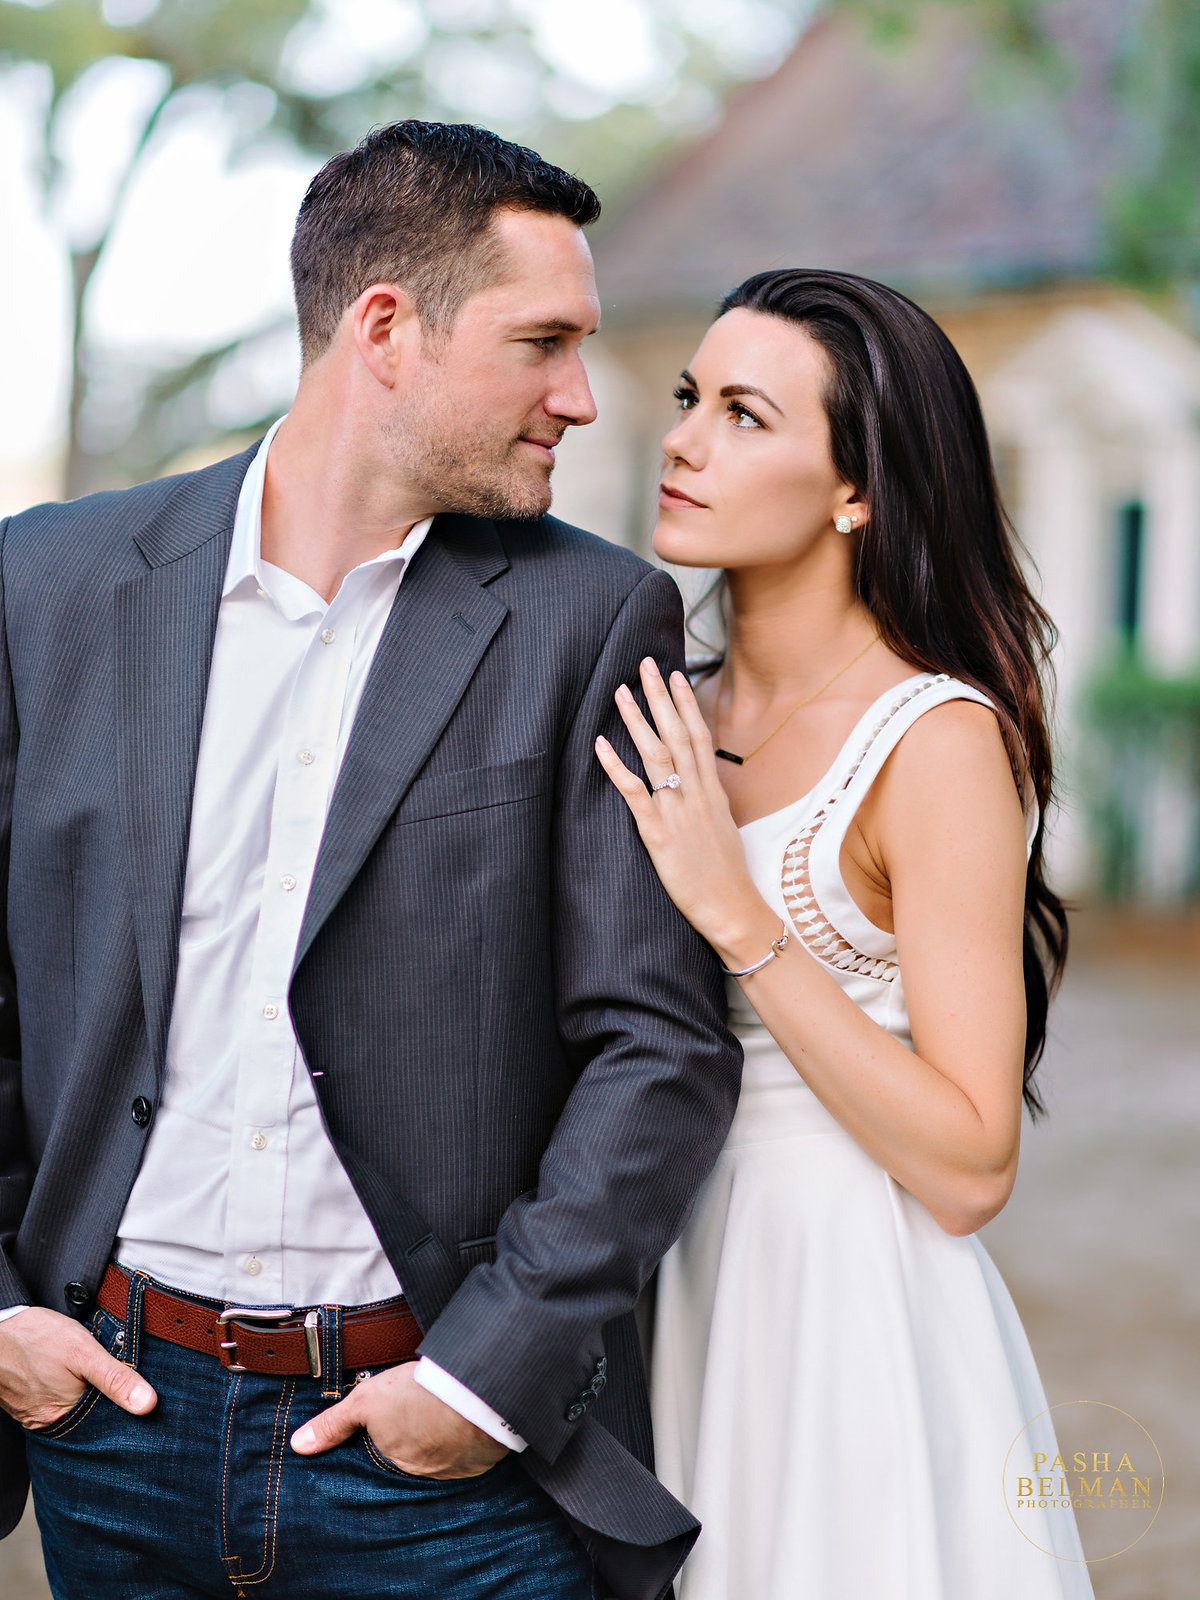 Charleston Engagement Photography | Engagement Pictures in Charleston | Engagement Portraits by Pasha Belman Photographer-14